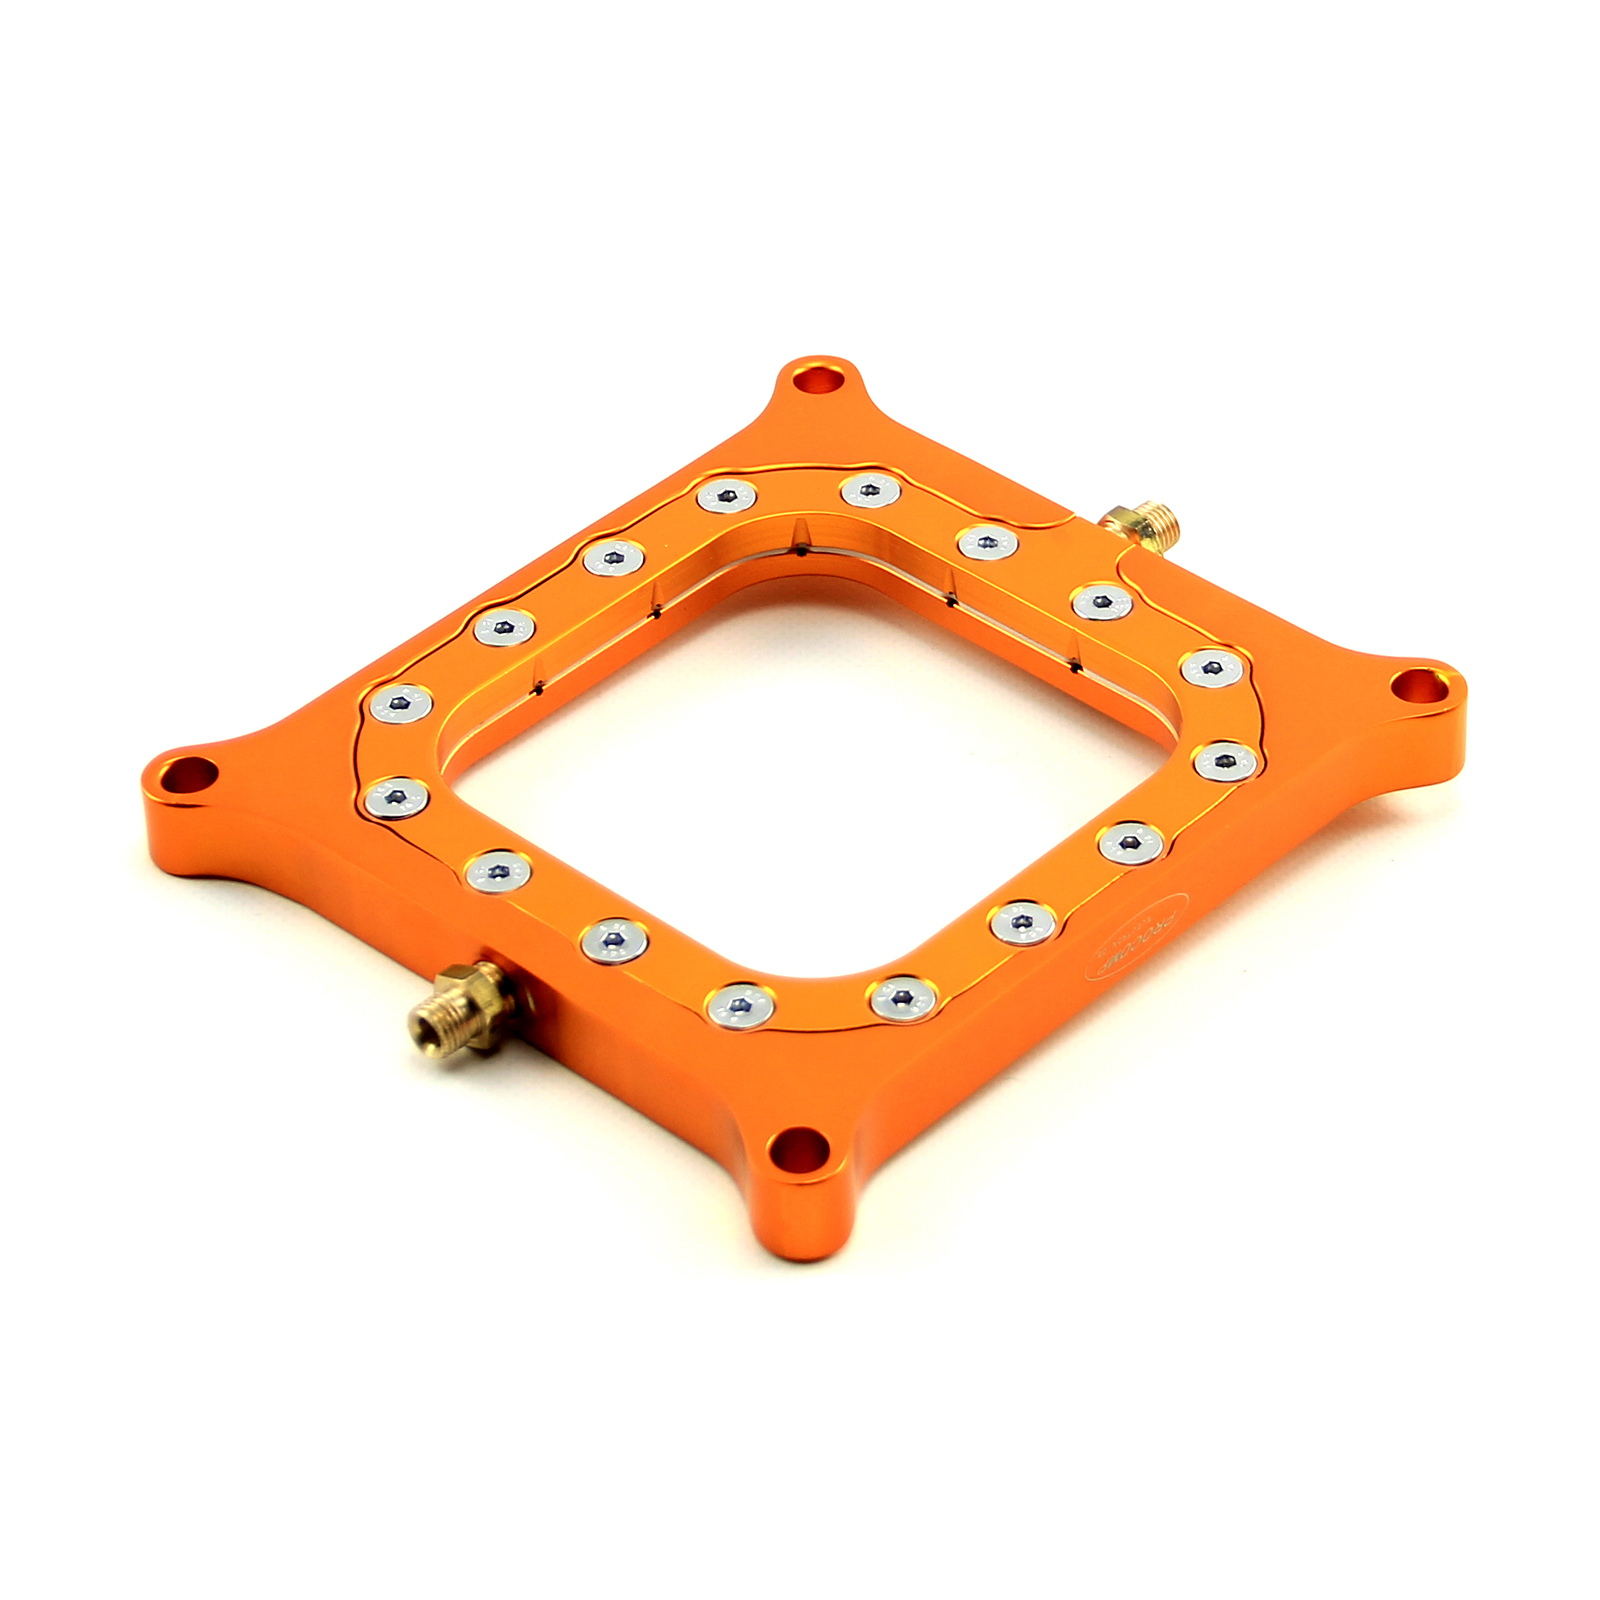 Nitrous Oxide 0.500 Yellow Billet Square Bore Perimeter Injection Spacer Plate